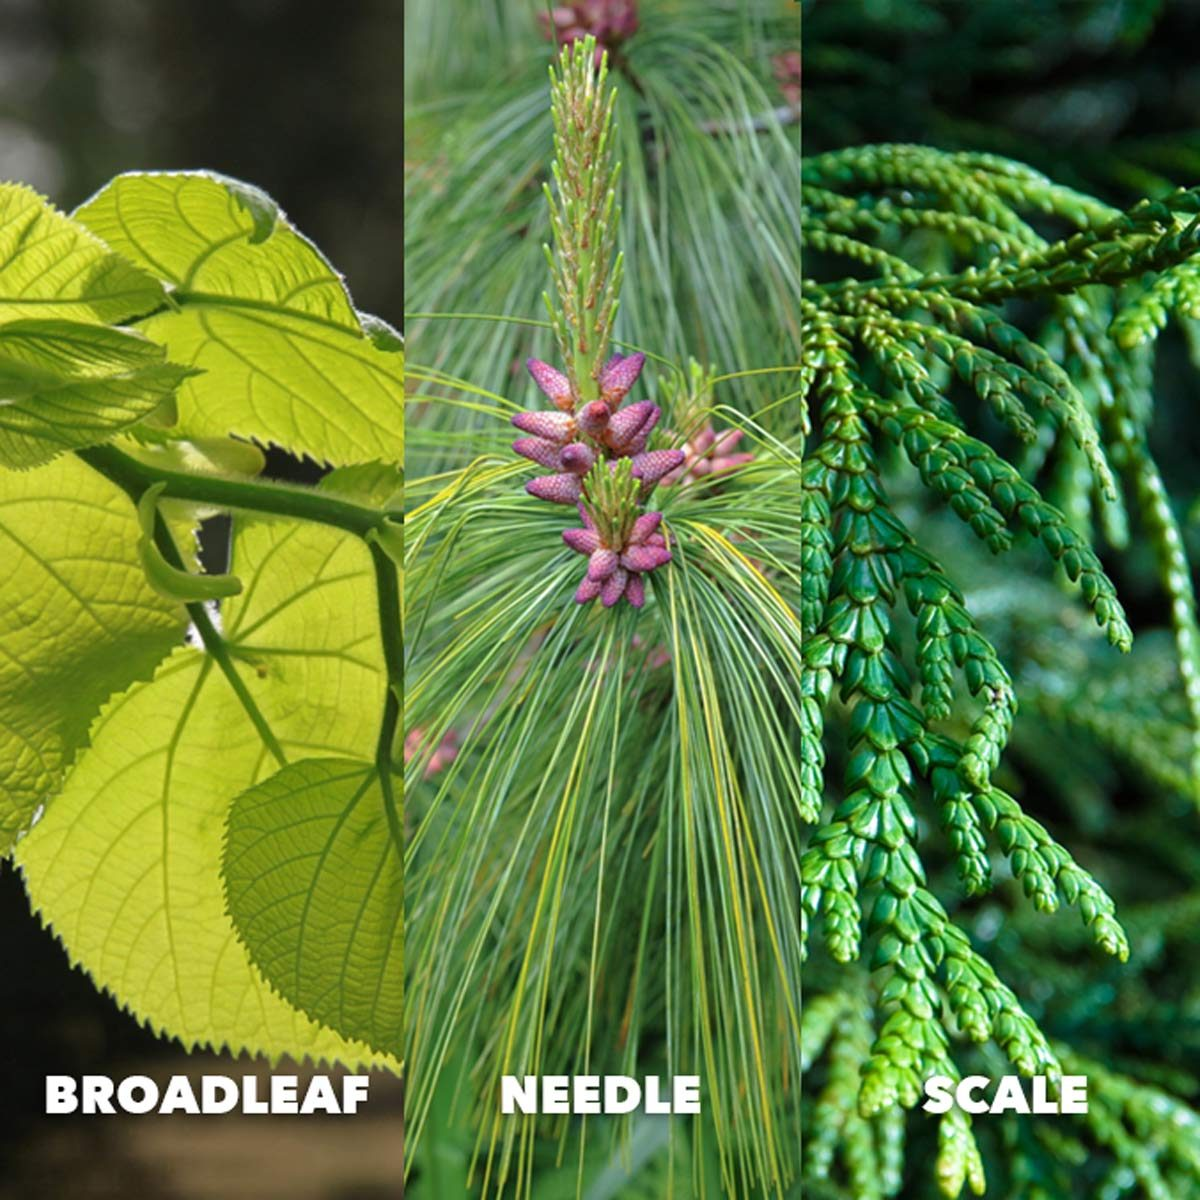 How To Identify Tree Species